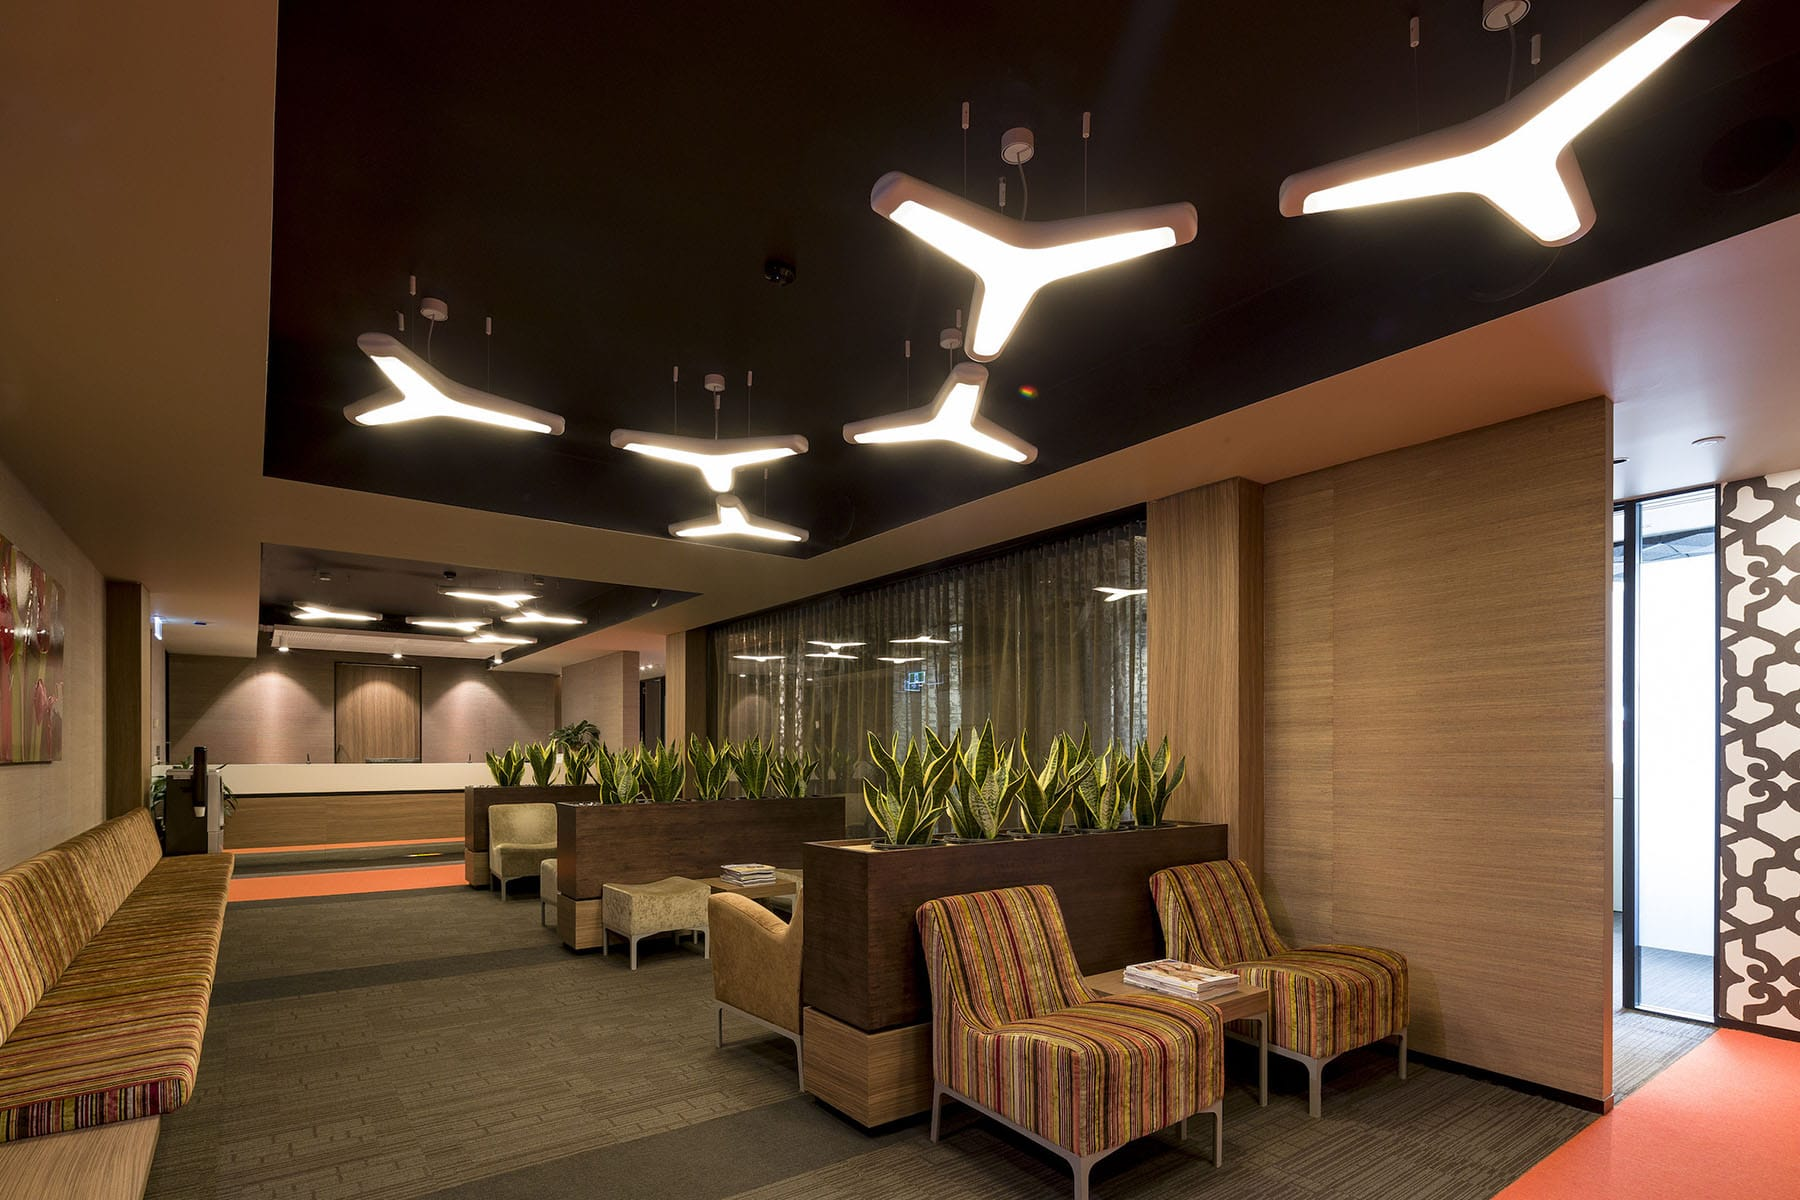 Create It Constructions - Medical Fitout. Health Fitout. Doctors Fitout. Waiting Room Fitout. Specialist Design Fitout Construction Company Brisbane. Shared Office Fitout.